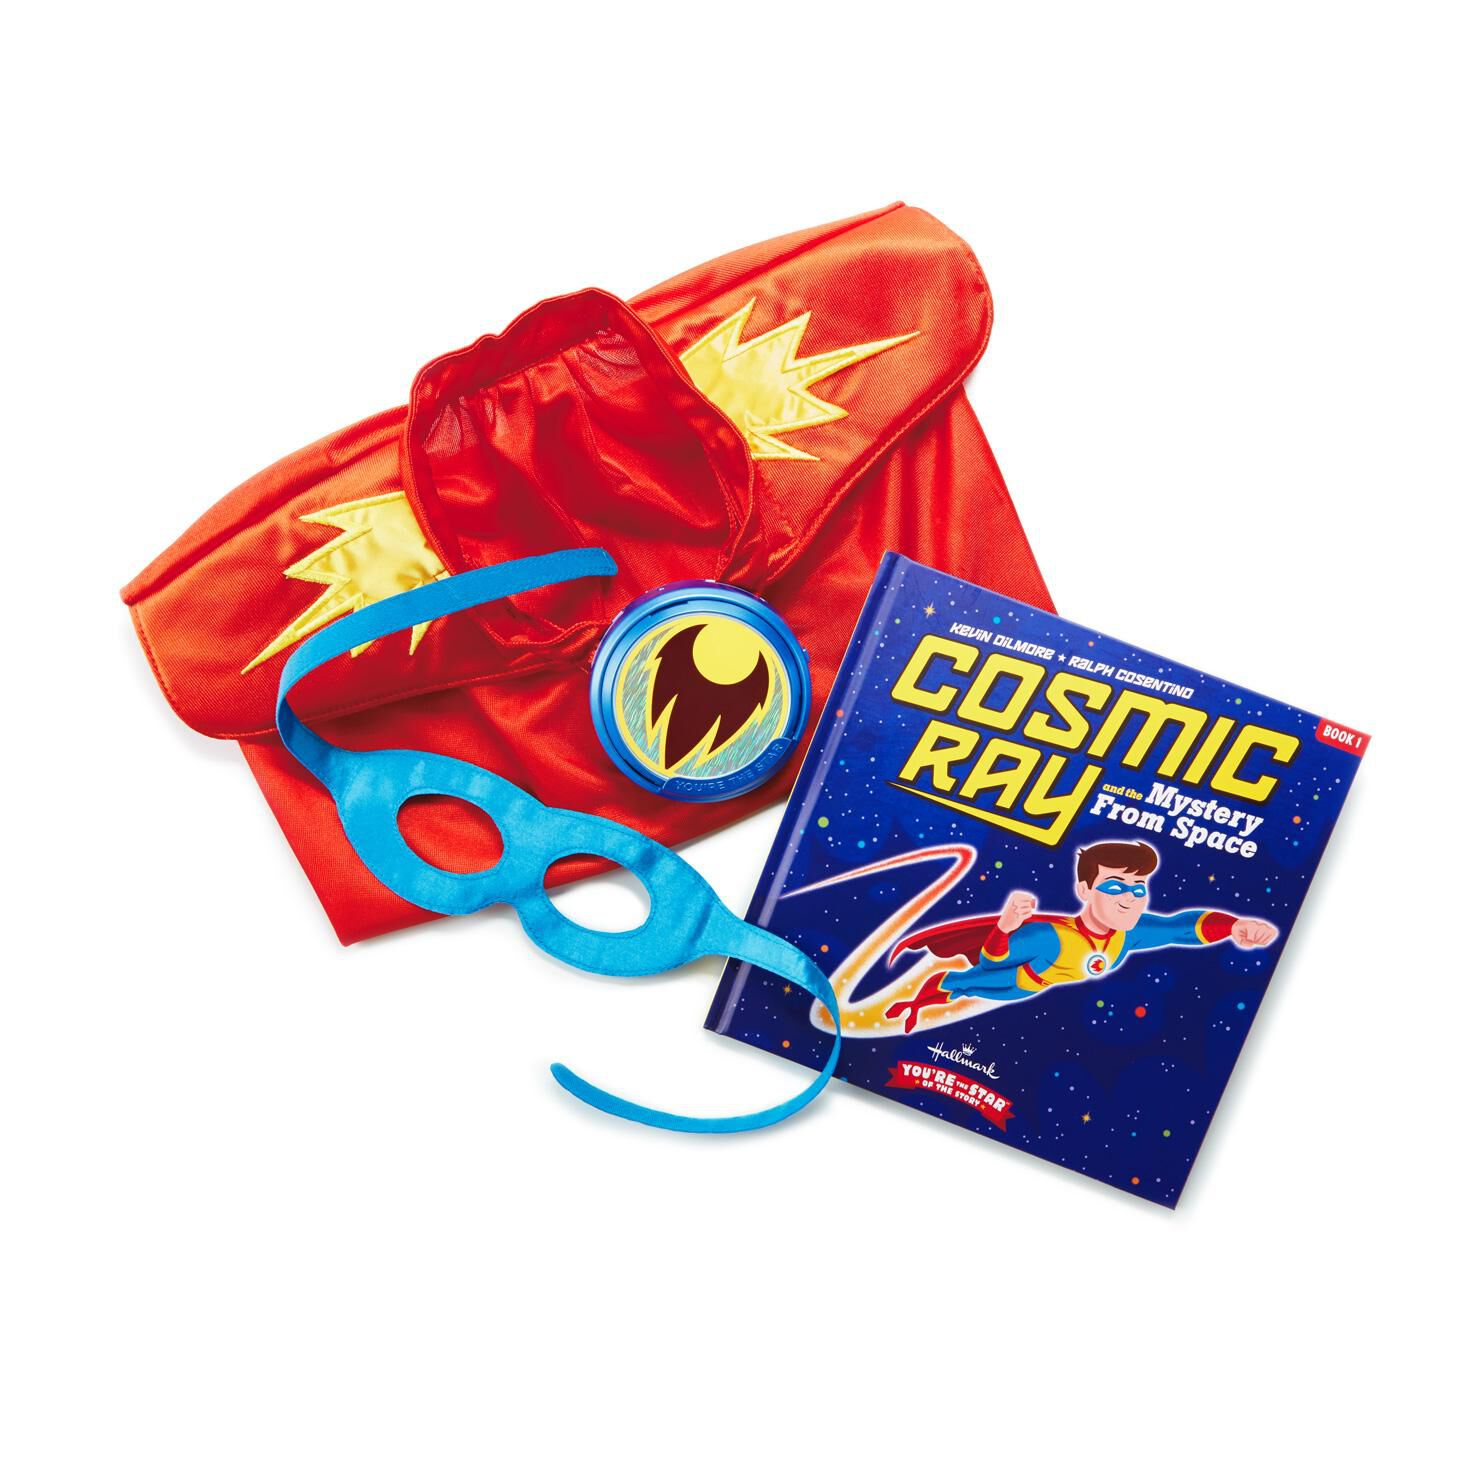 Cosmic Ray® Costume and Storybook